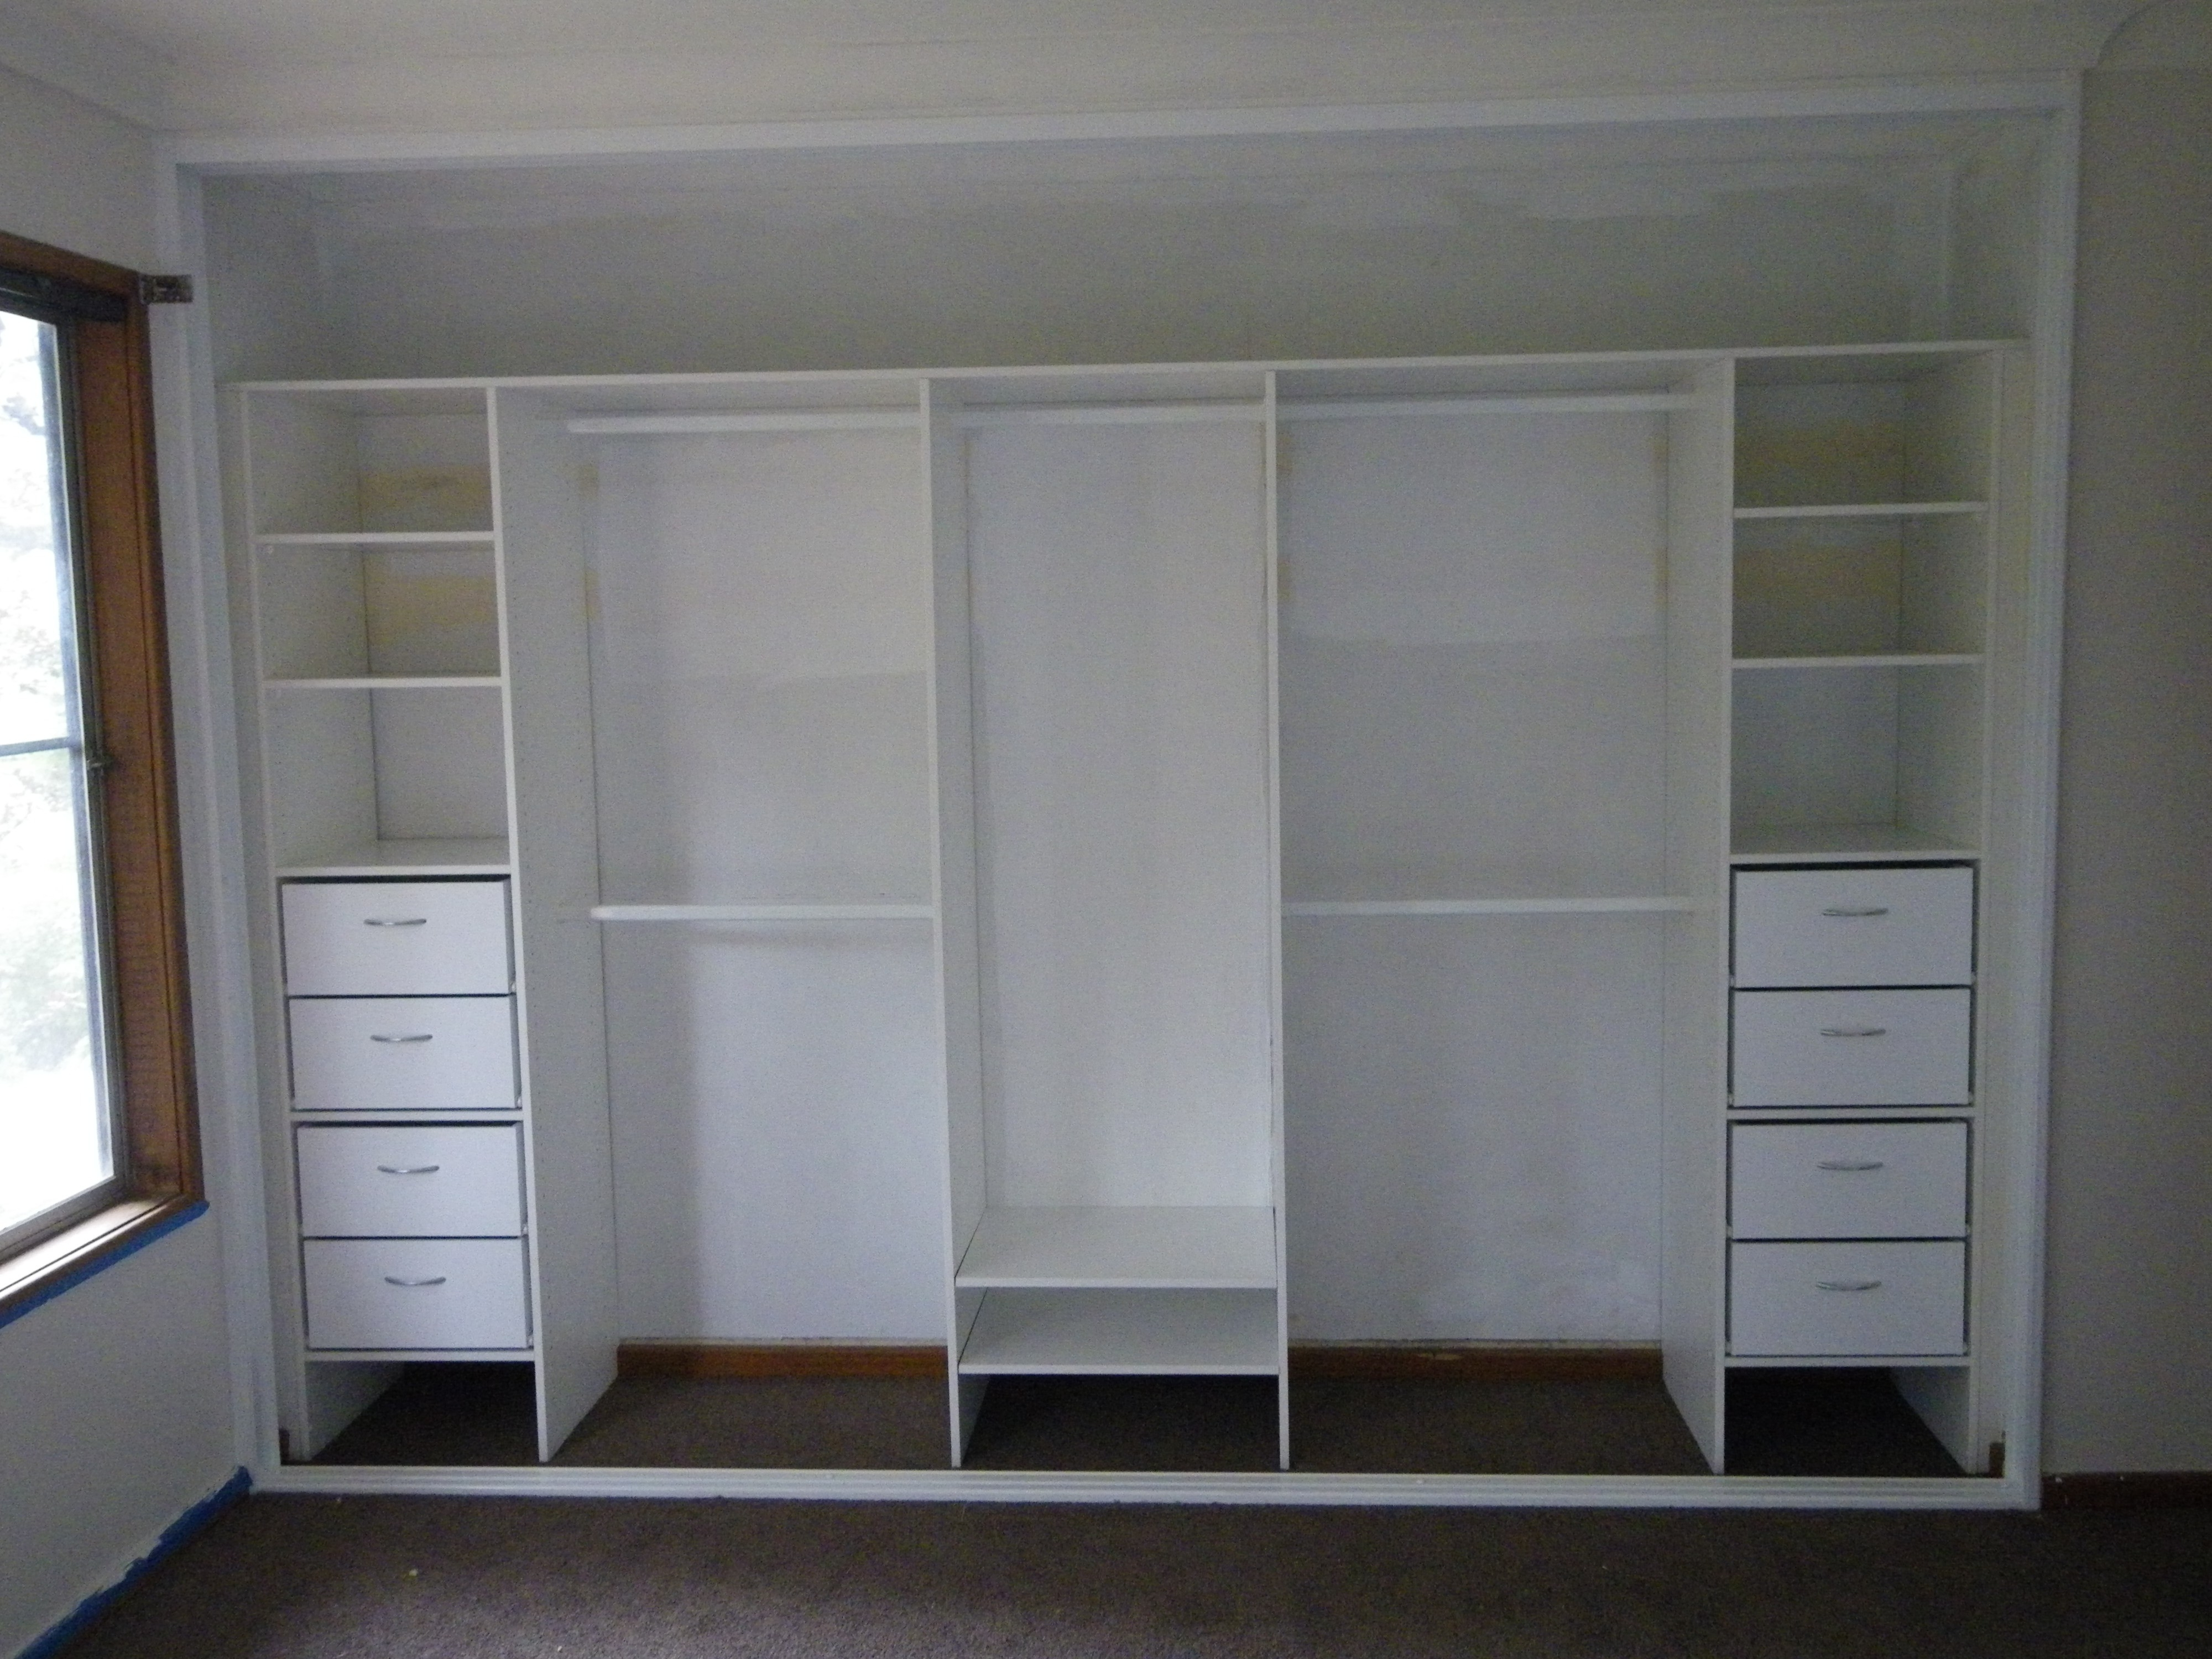 Large White Wardrobes With Drawers Within Well Known Vintage White Wooden Wardrobe With Inside Shelves And Numerous (View 10 of 15)